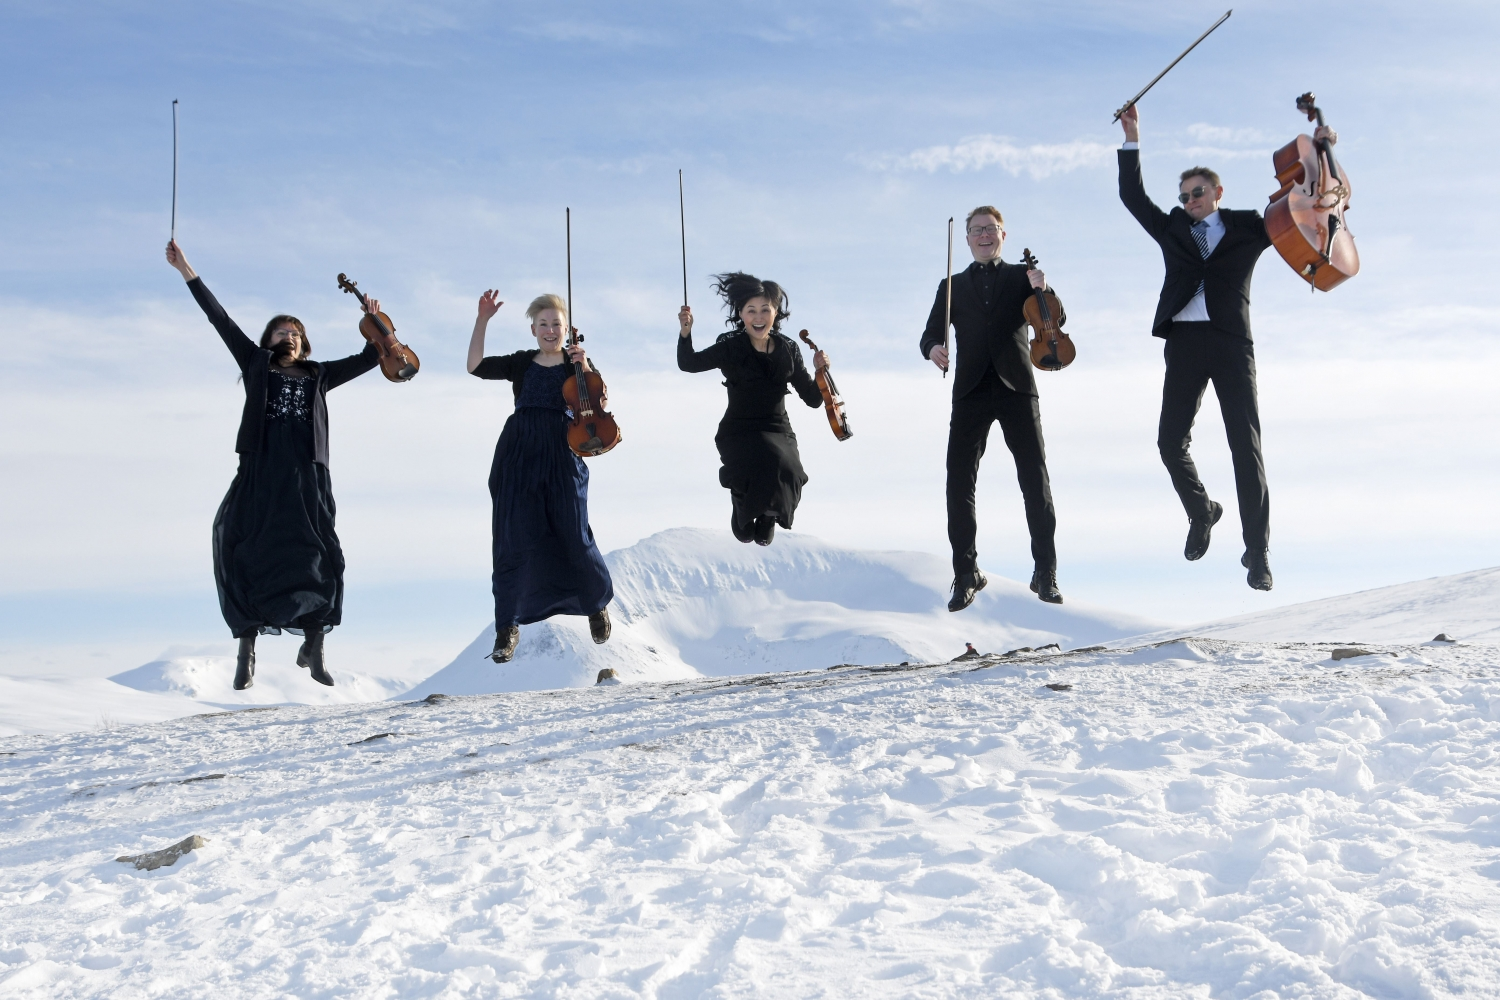 Five happy musicians with imusical nstruments jumping in the snow